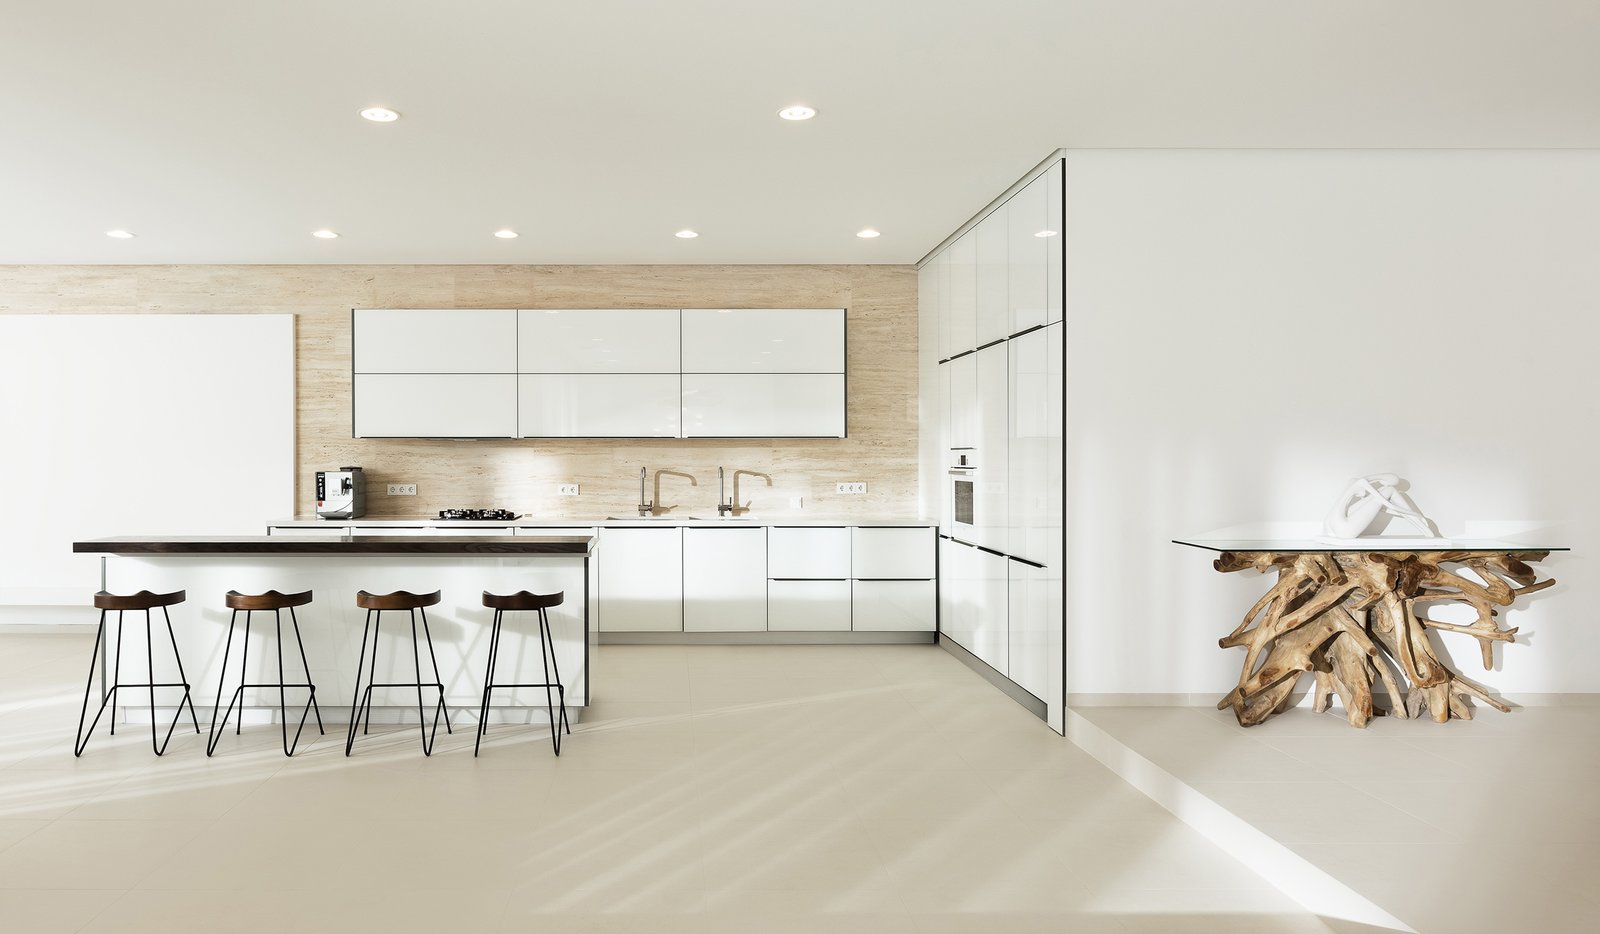 Kitchen, Quartzite, Stone, White, Wood, Metal, Travertine, Porcelain Tile, Stone Slab, Ceiling, Refrigerator, Wall Oven, Microwave, Dishwasher, Ice Maker, Cooktops, and Drop In WH Residence | M3 Architects  Best Kitchen Microwave Wood Refrigerator Travertine Stone Photos from WH Residence